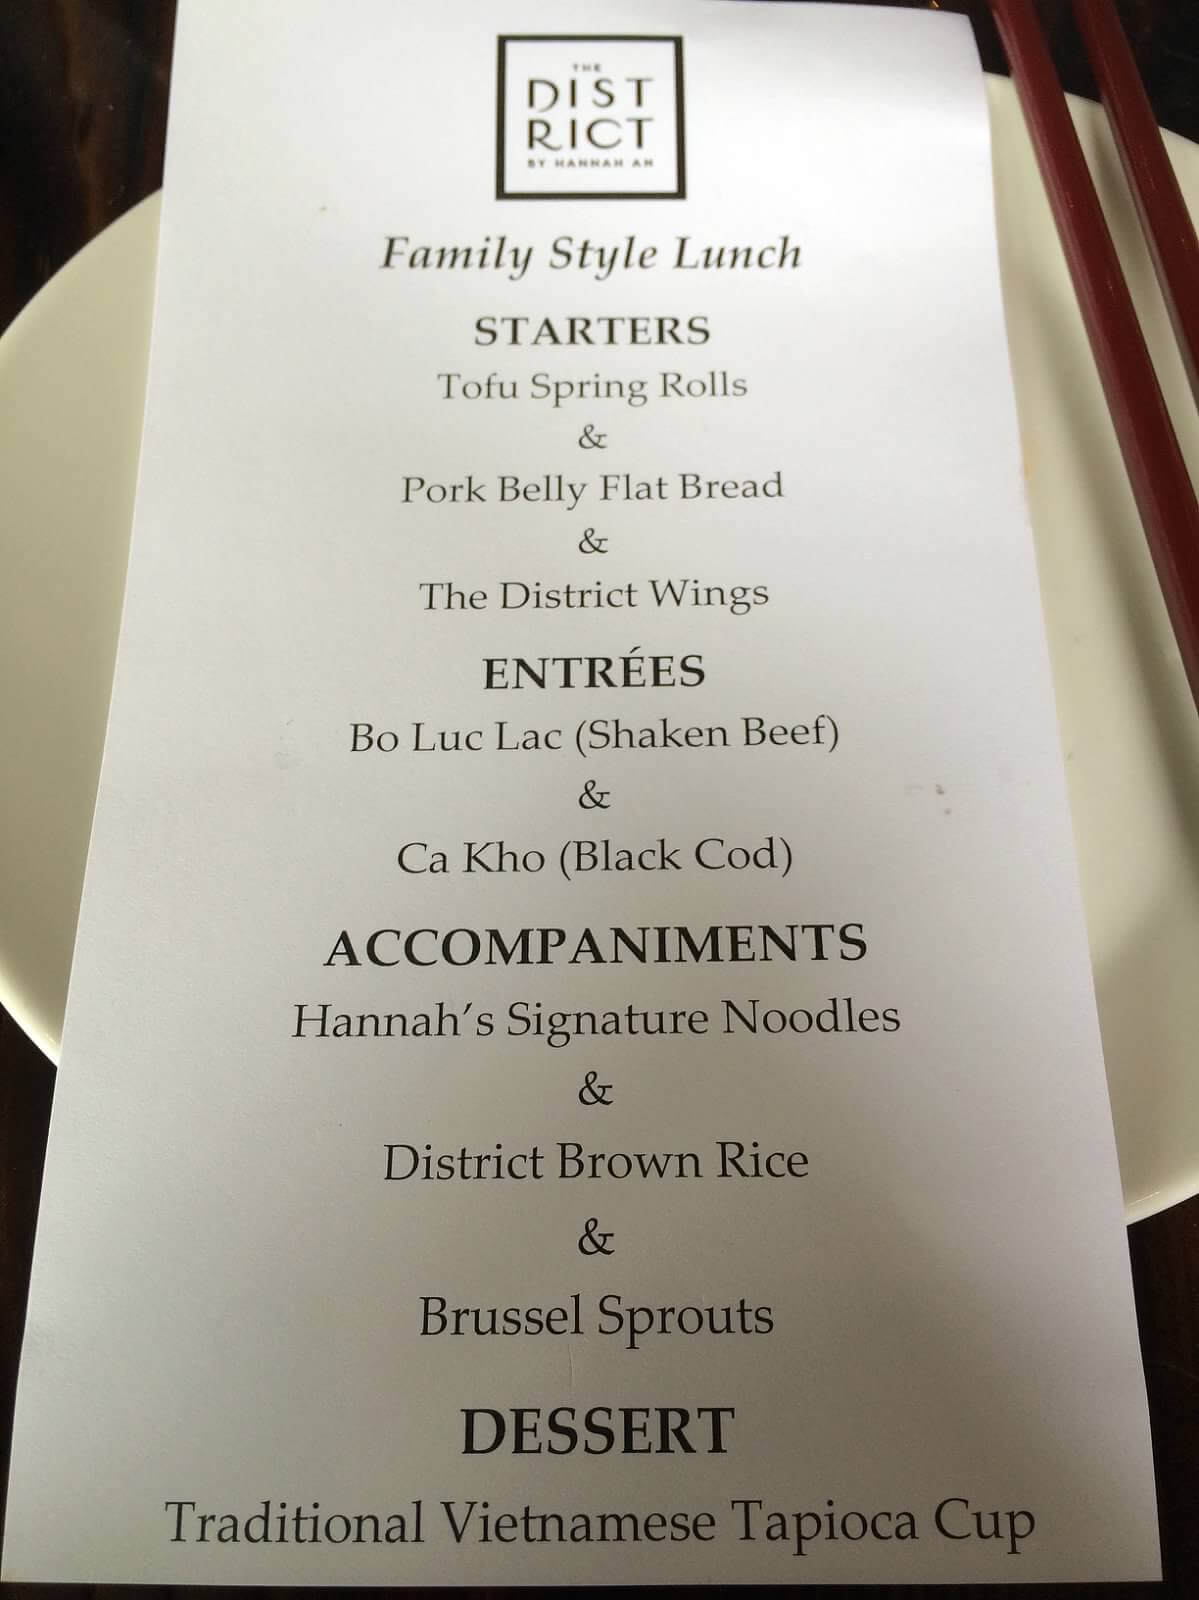 Our family-style menu. Every item was a winner!